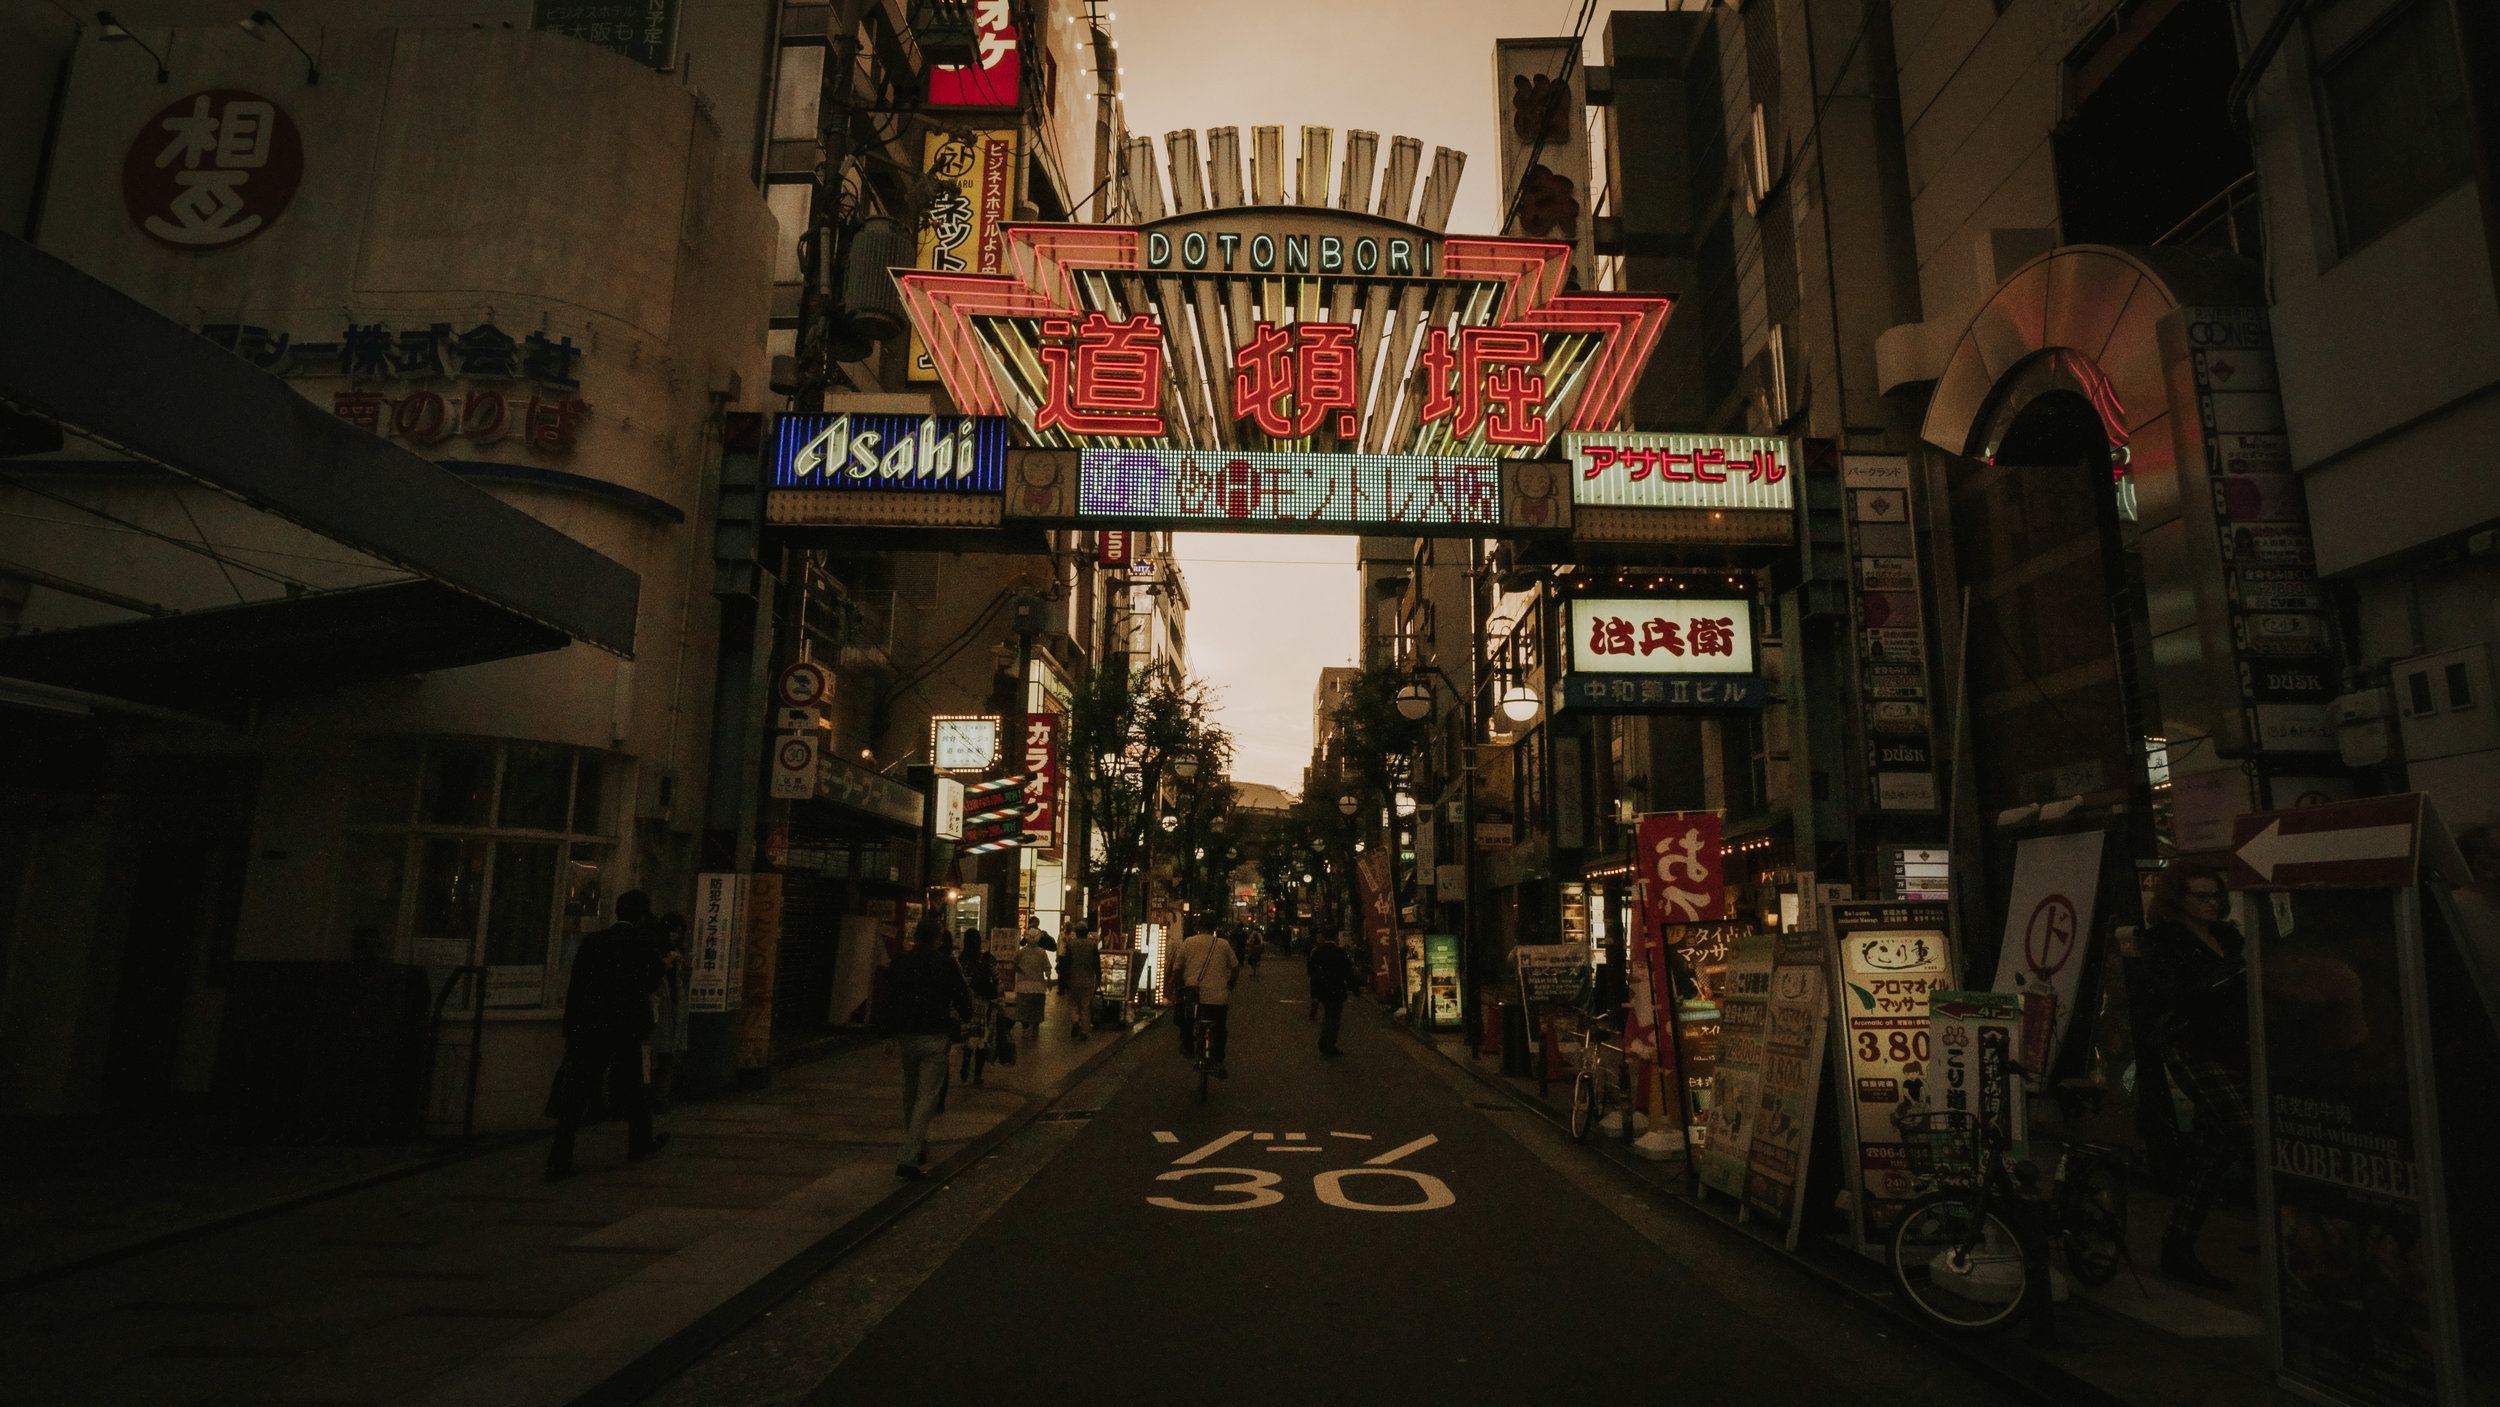 The calmness of the Dotonbori district before chaos ensues at nightfall.